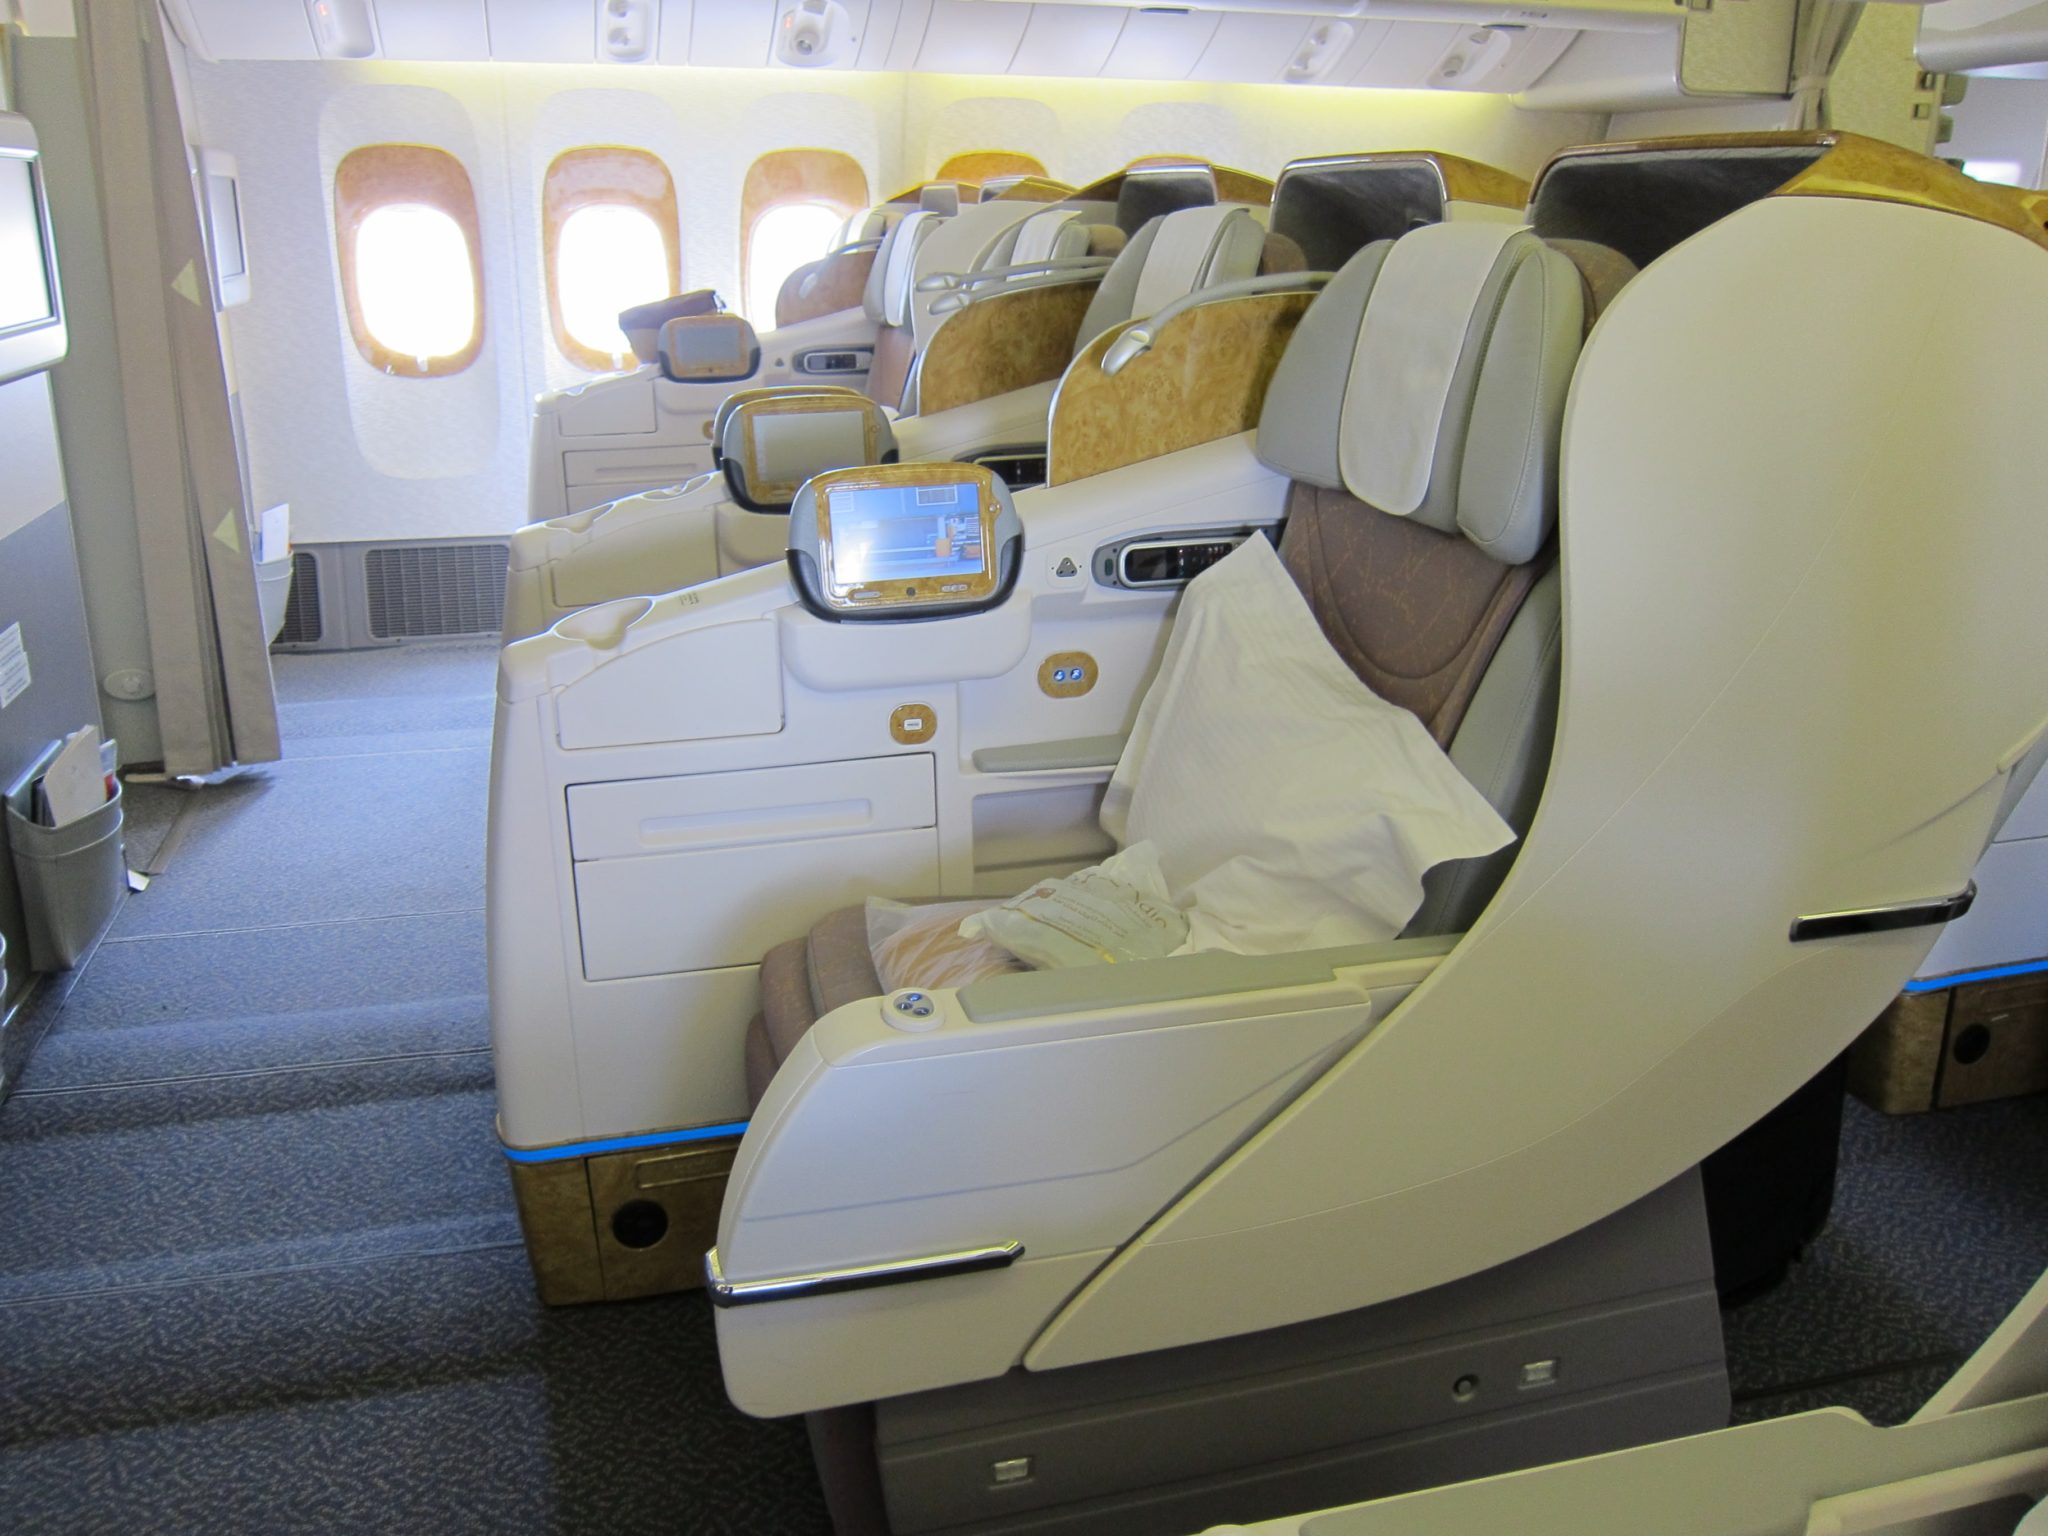 The passengers next to the aisles on Emirates' 2-3-2 777 layout get very little protection from passing%2